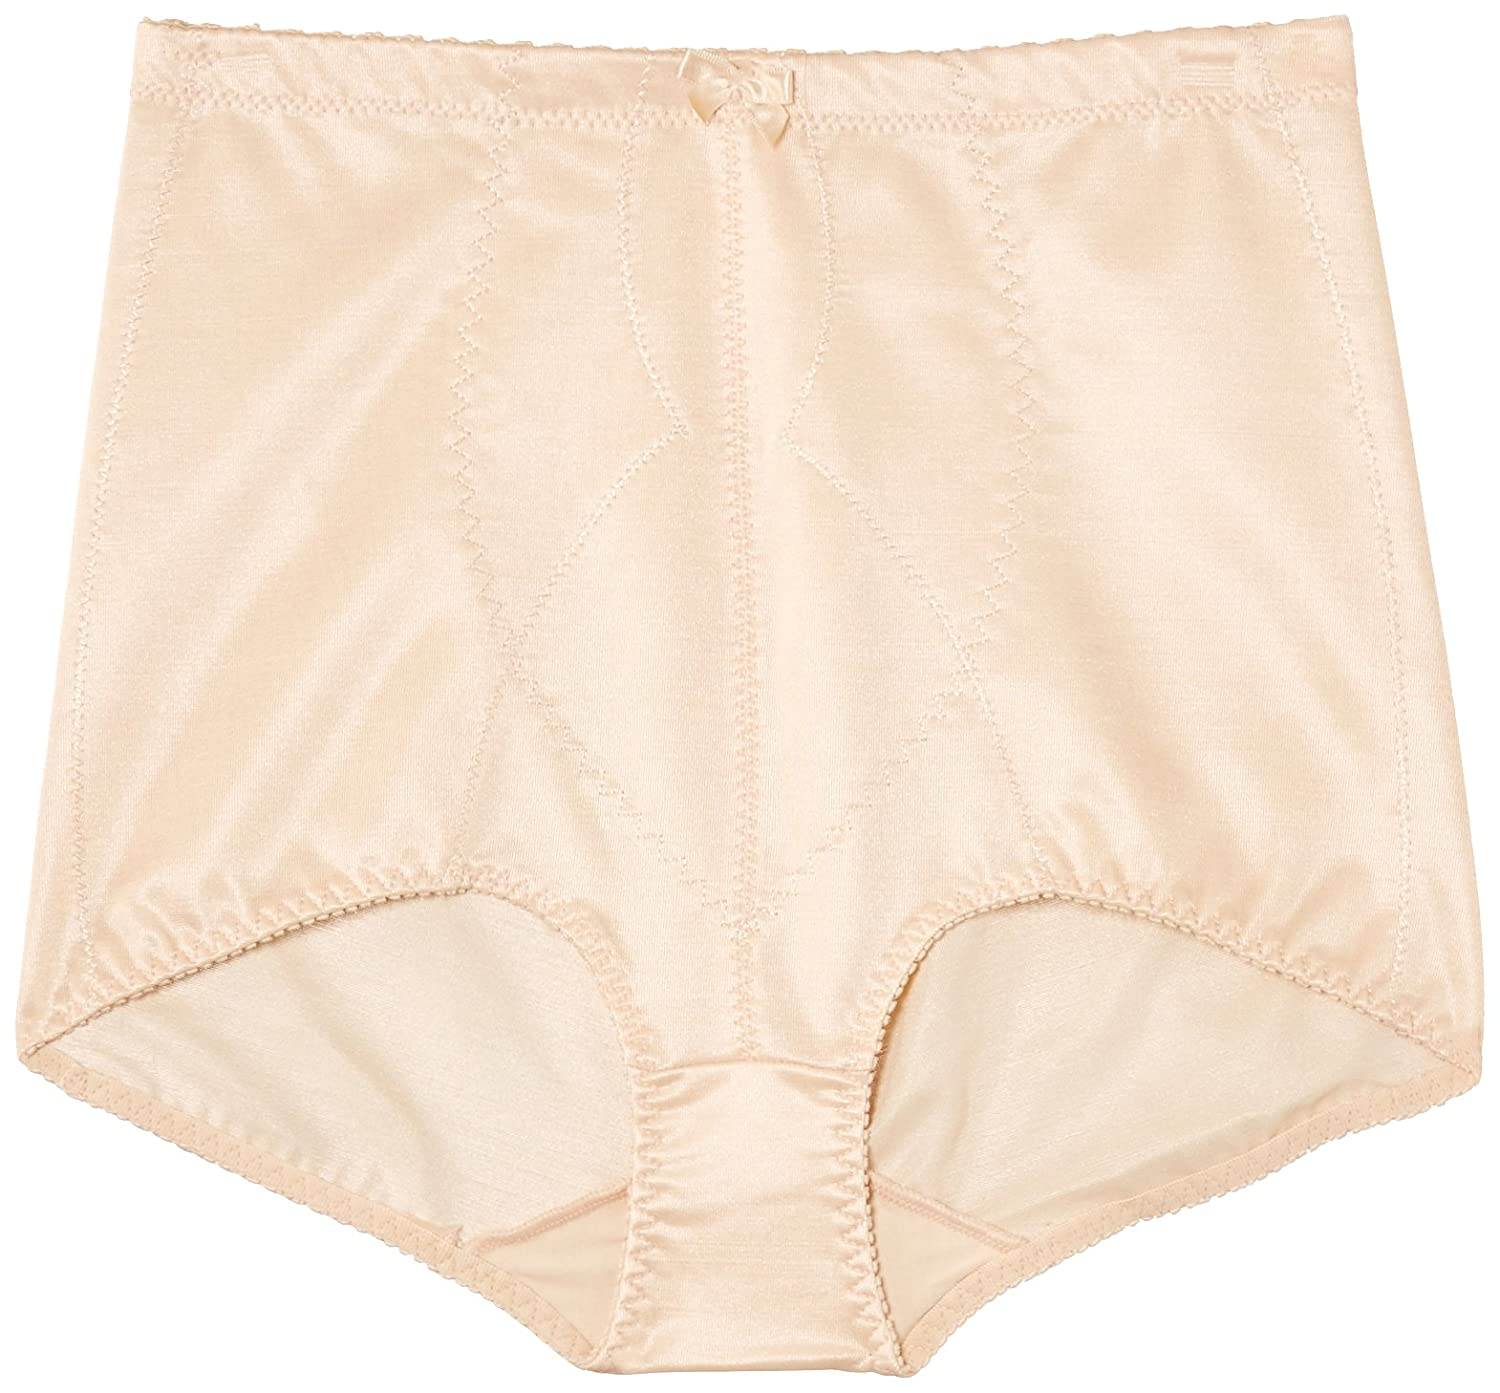 Naturana Womens Panty Girdle Shaping Control Knickers